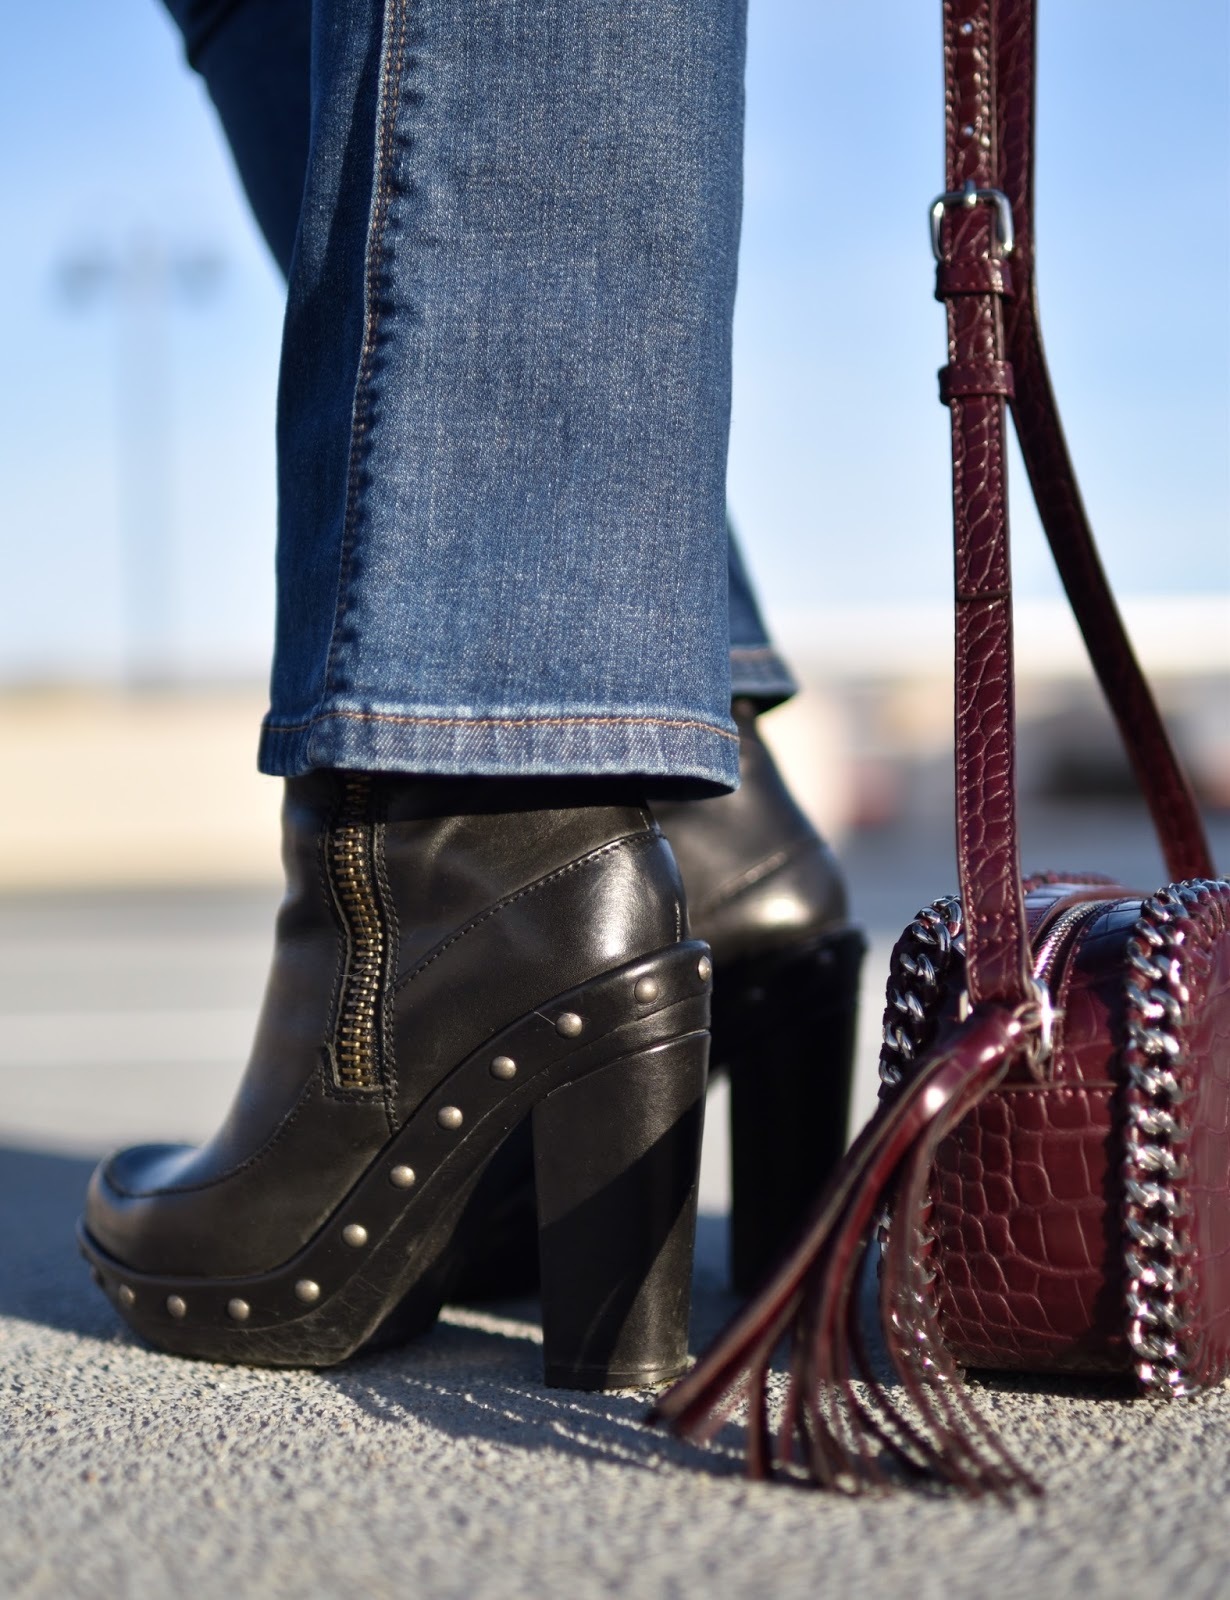 Monika Faulkner outfit inspiration - cropped flare jeans, platform booties, maroon cross-body bag